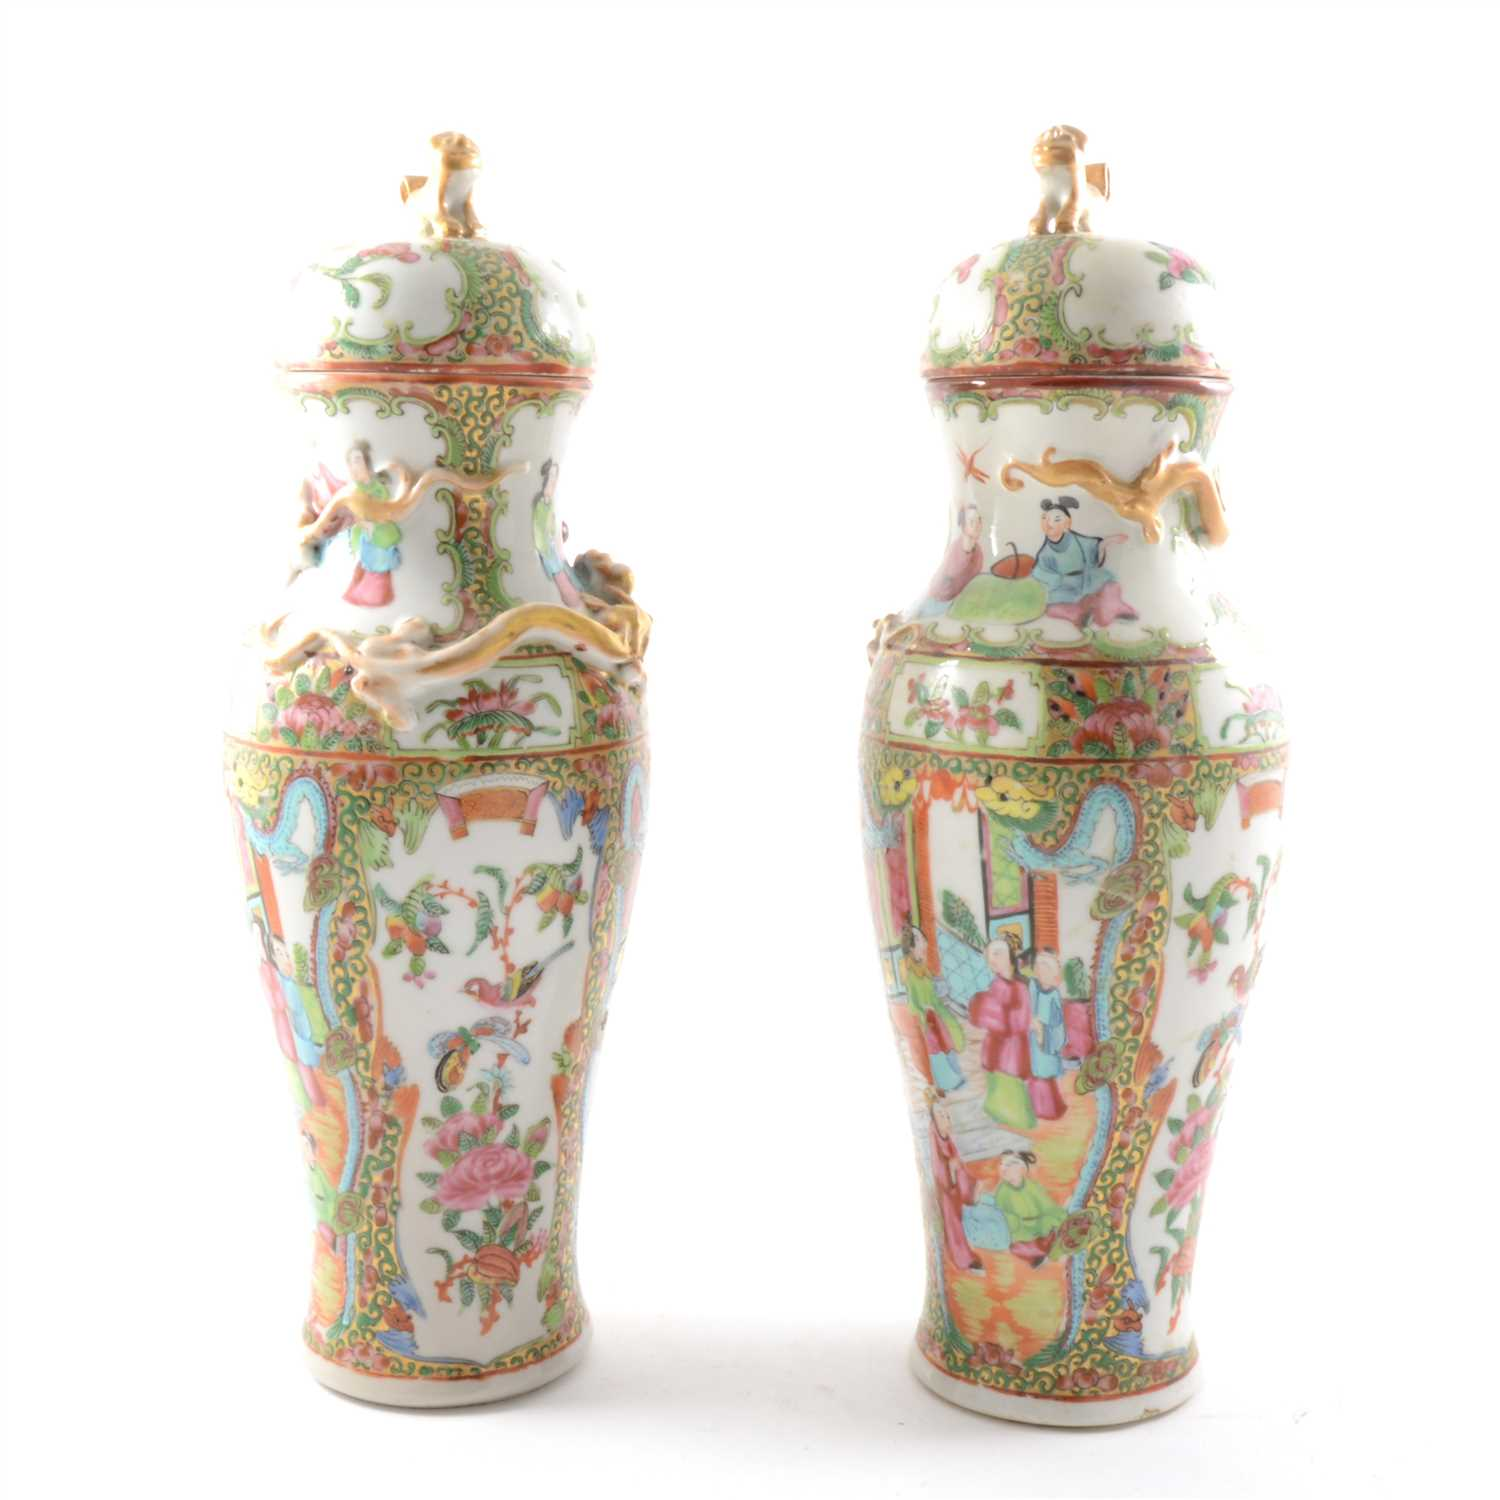 Lot 7-A pair of Cantonese porcelain baluster shape covered vases